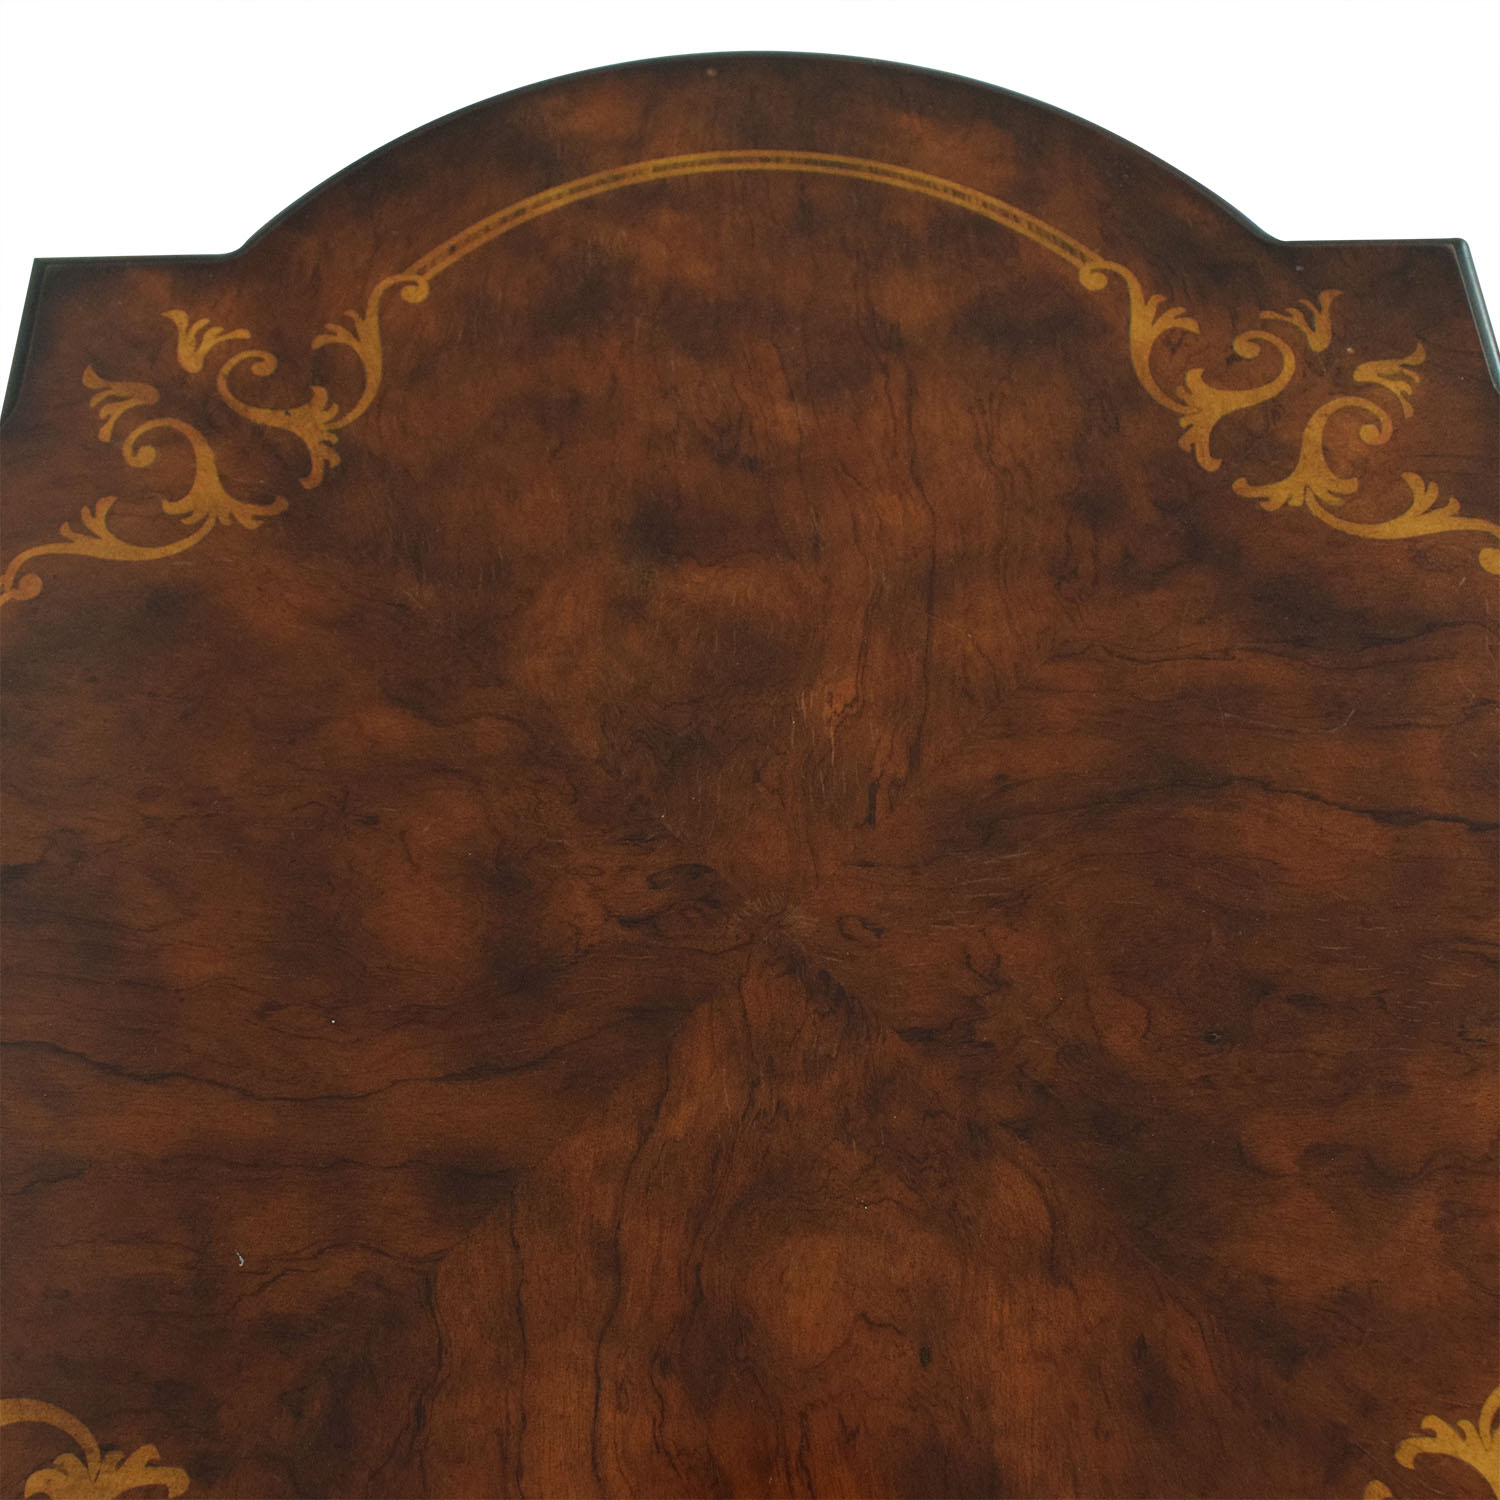 Ethan Allen Ethan Allen Marquetry Inlaid End Table for sale